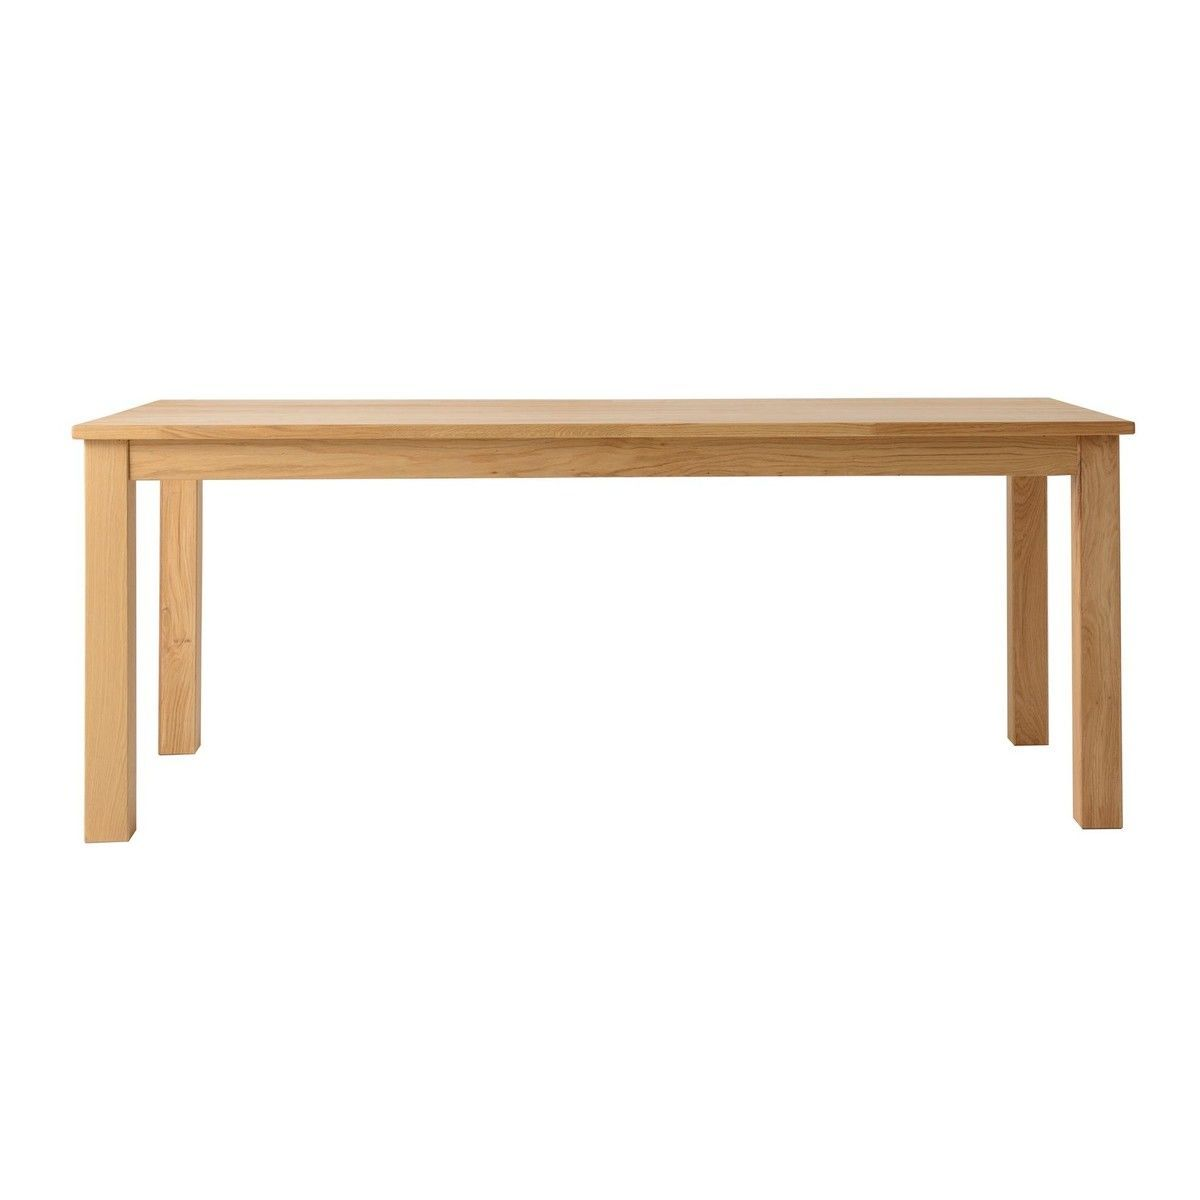 Casa Solid Wood Dining Table Jan Kurtz